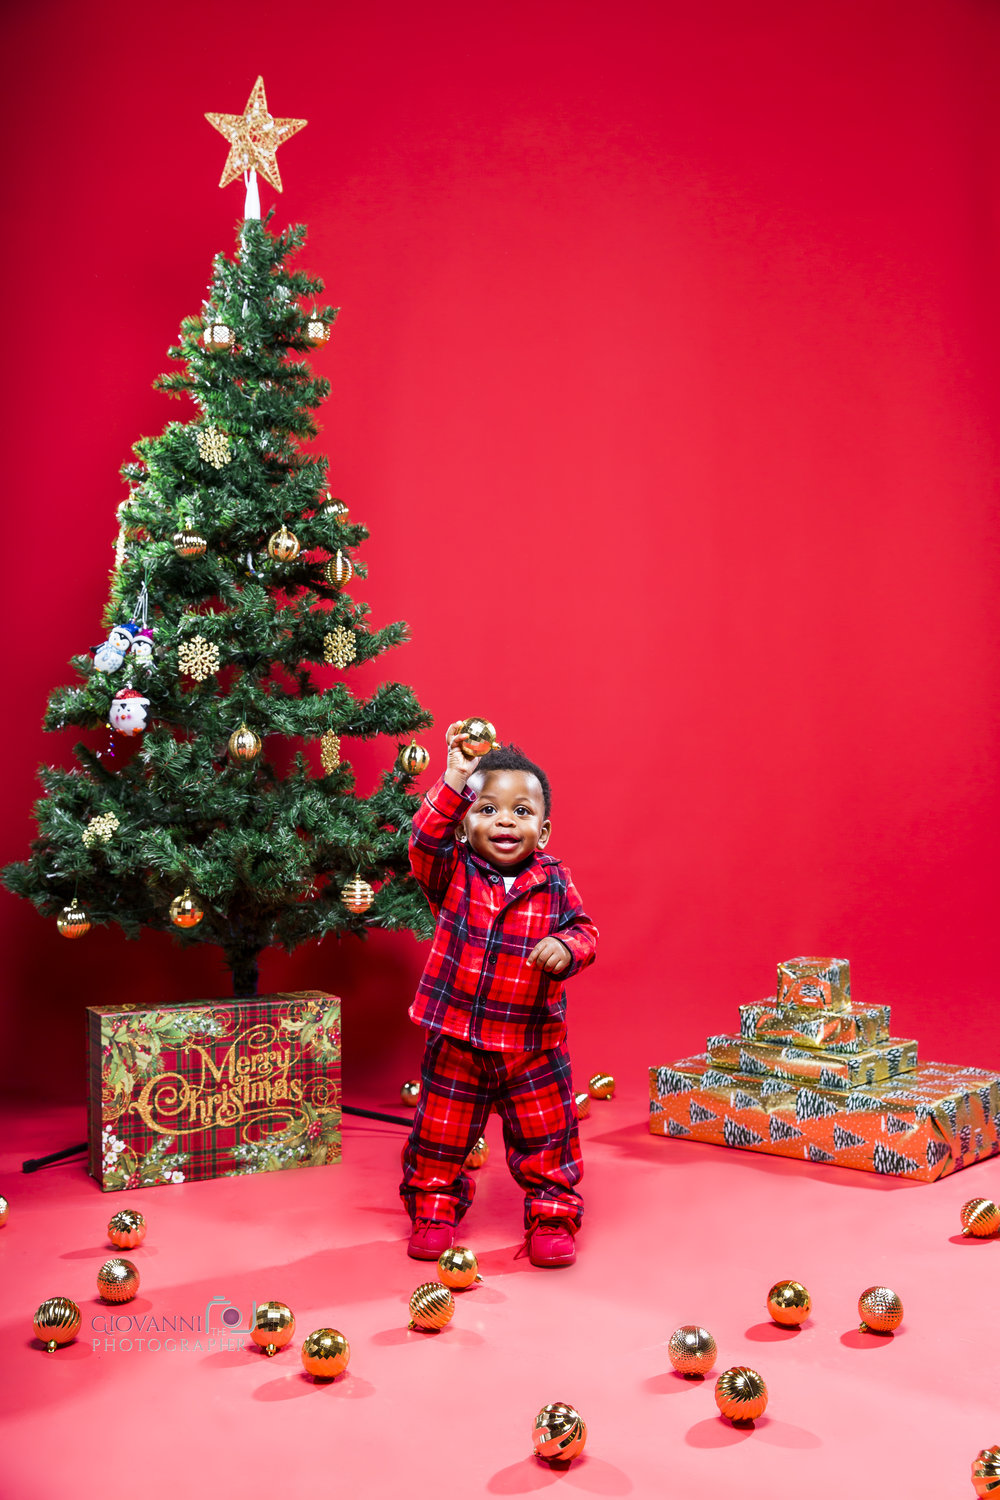 314A9809-12-16-18 - Sie - Chavin - Cannon - Christmas Photo Shoot - Boston Sudio Rental.jpg